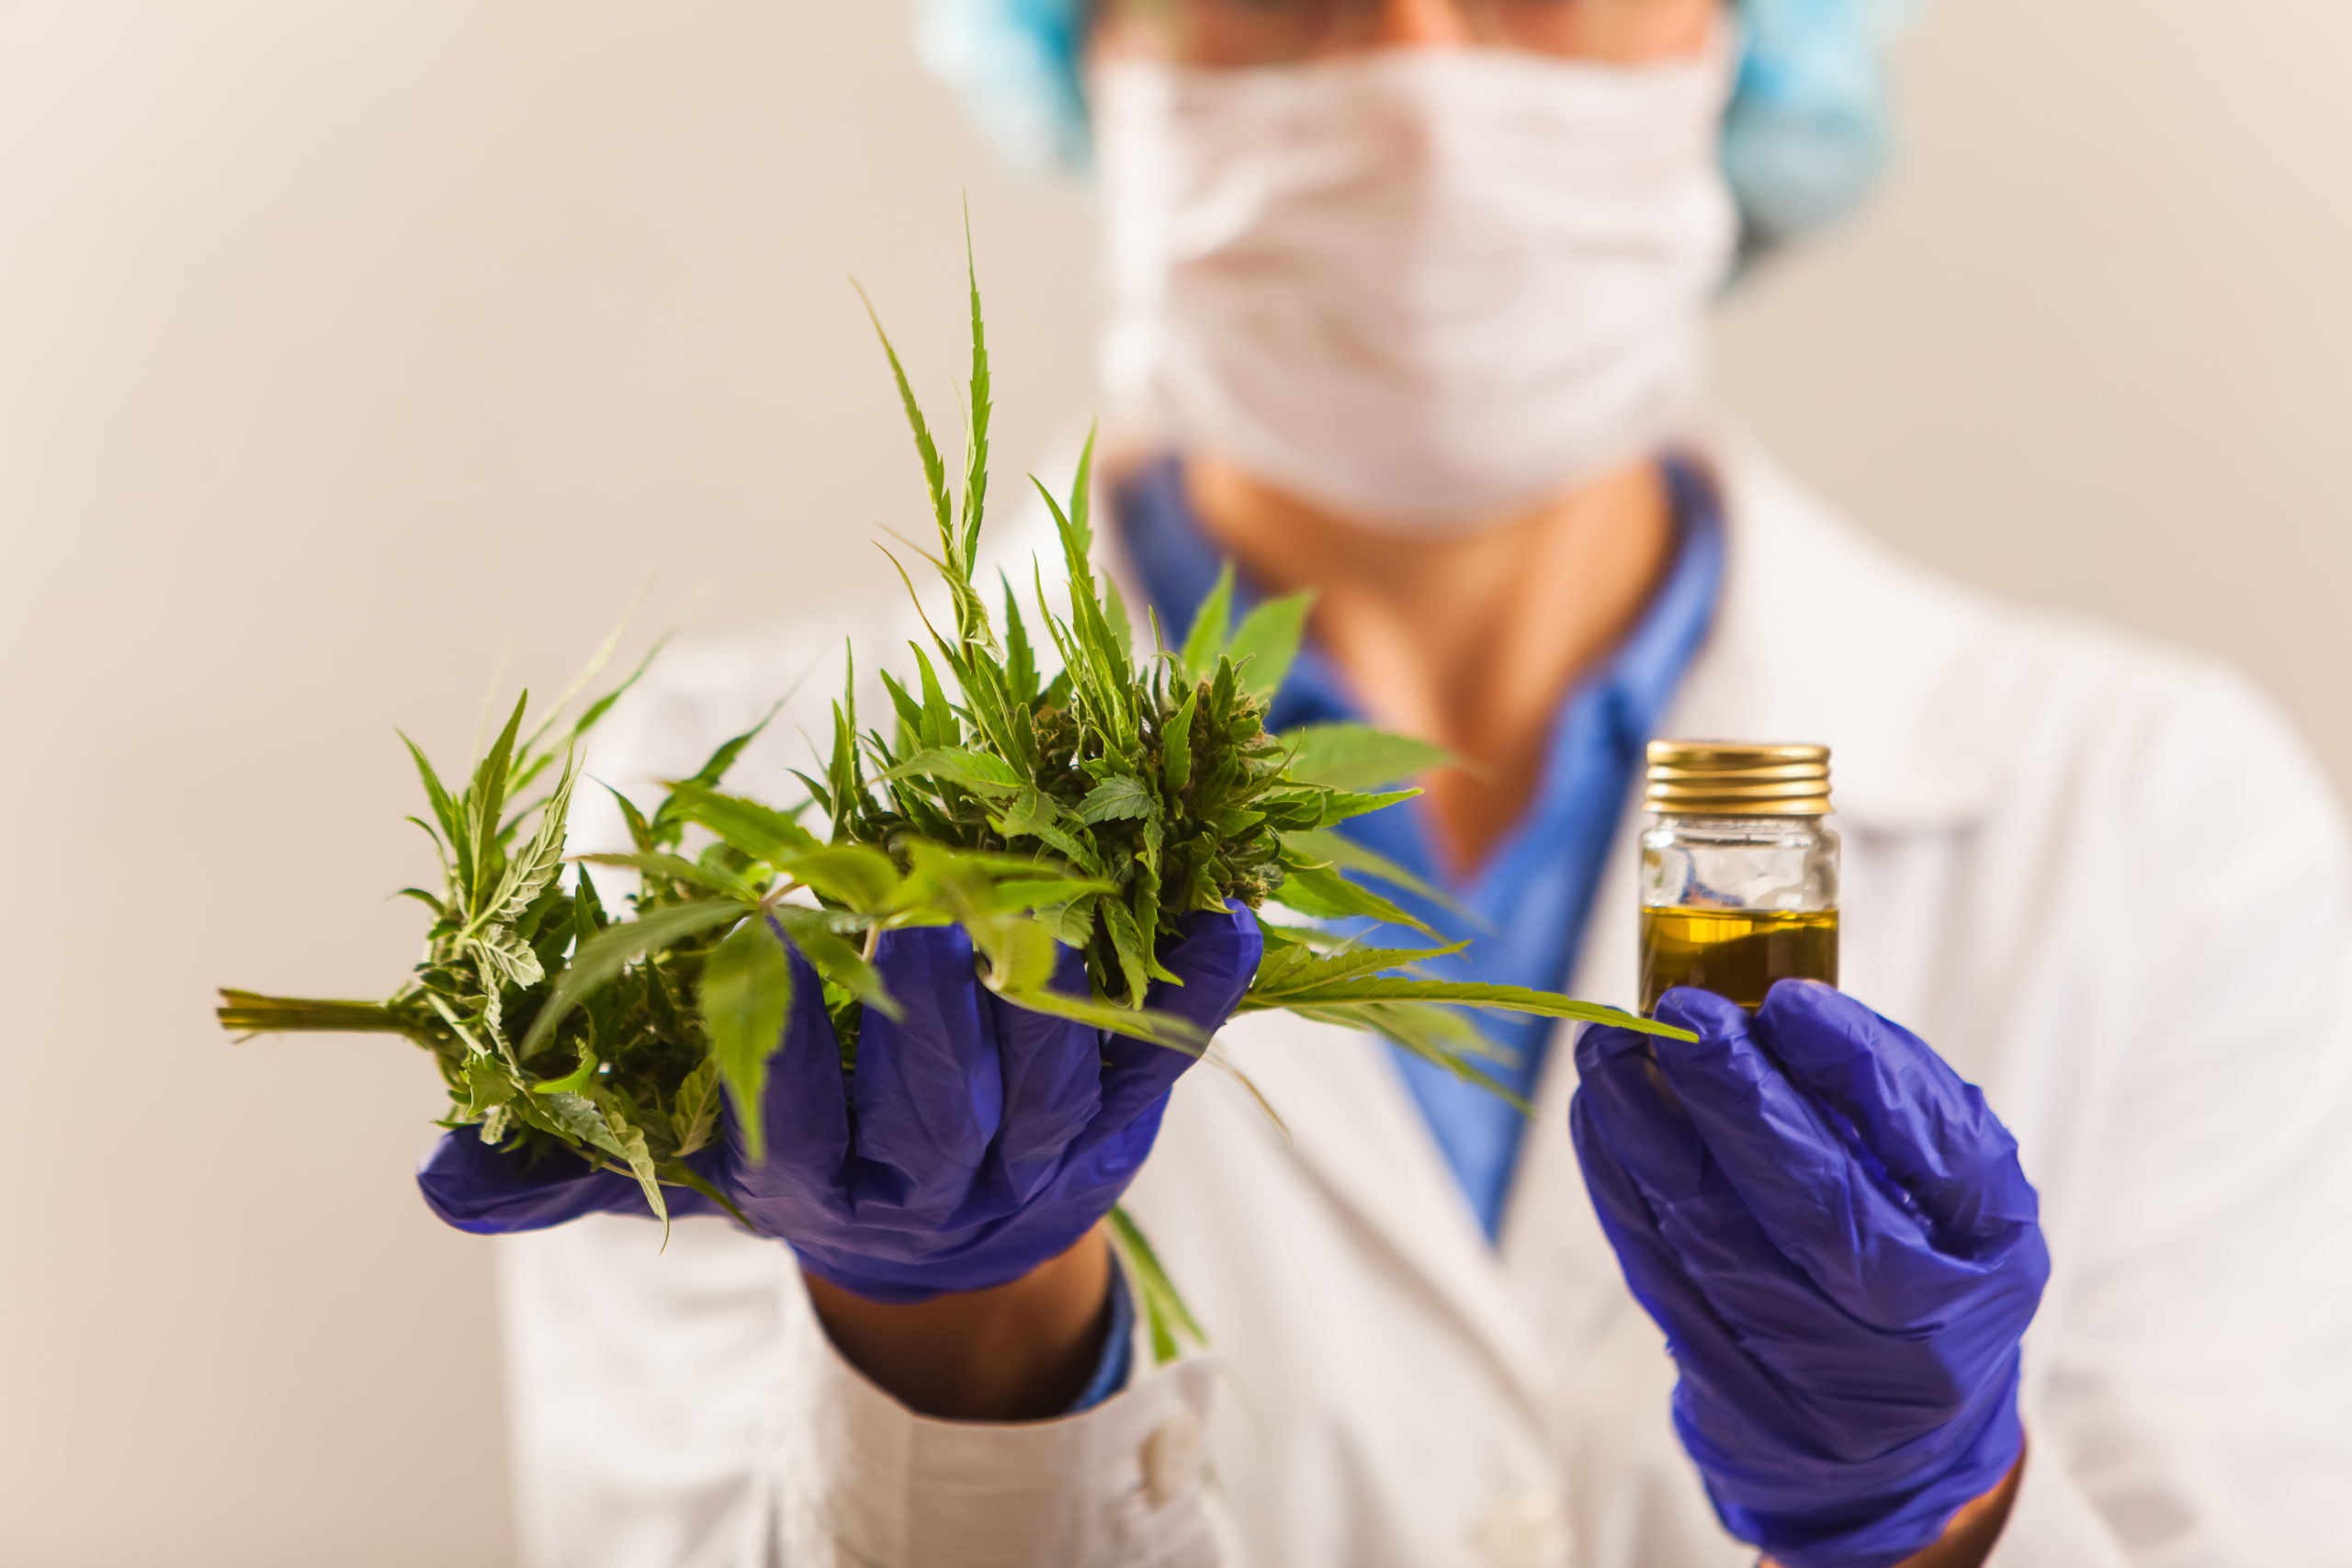 A doctor holds Cannabis used for medical and research purposes. (ElRoi/Shutterstock)